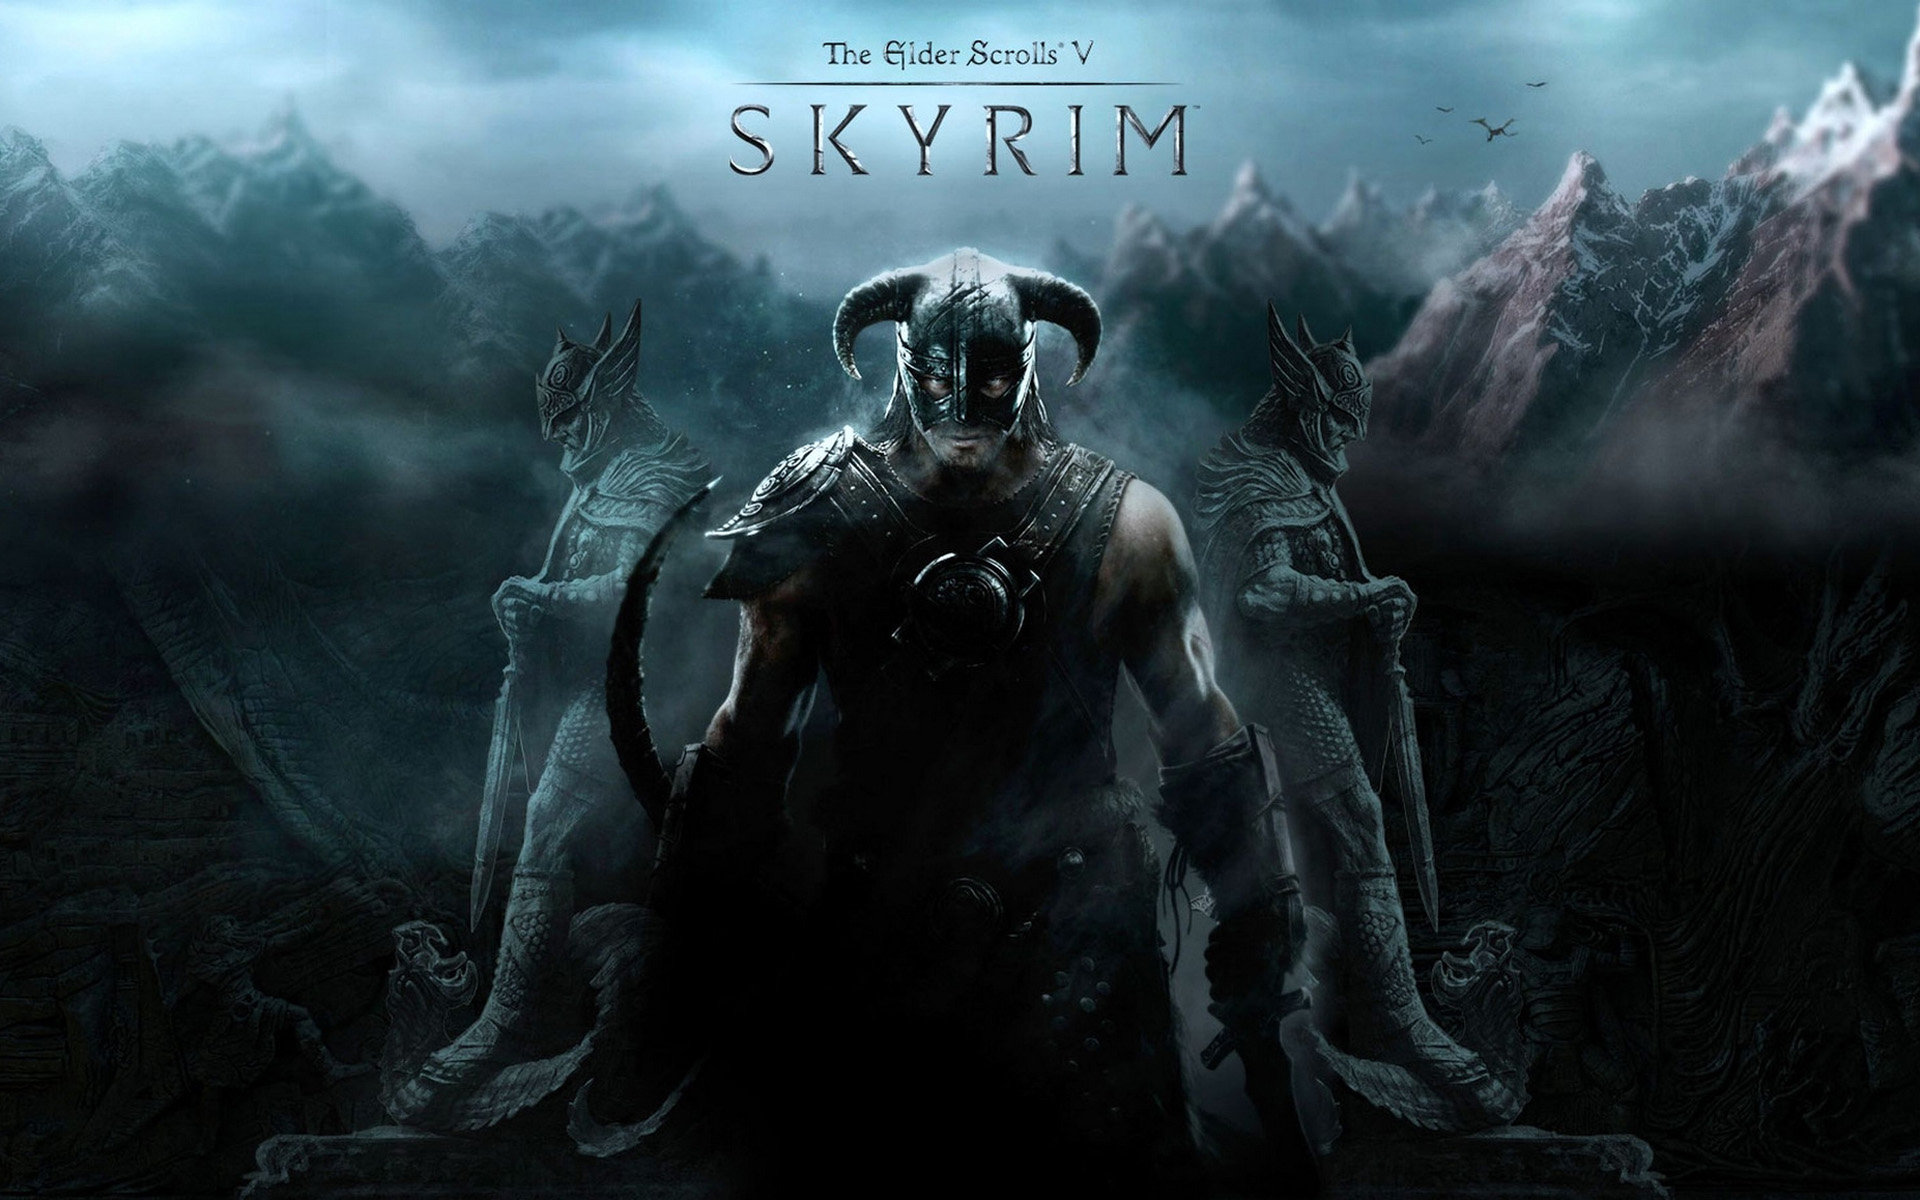 Wallpaper The Elder Scrolls V: Skyrim warrior and statues